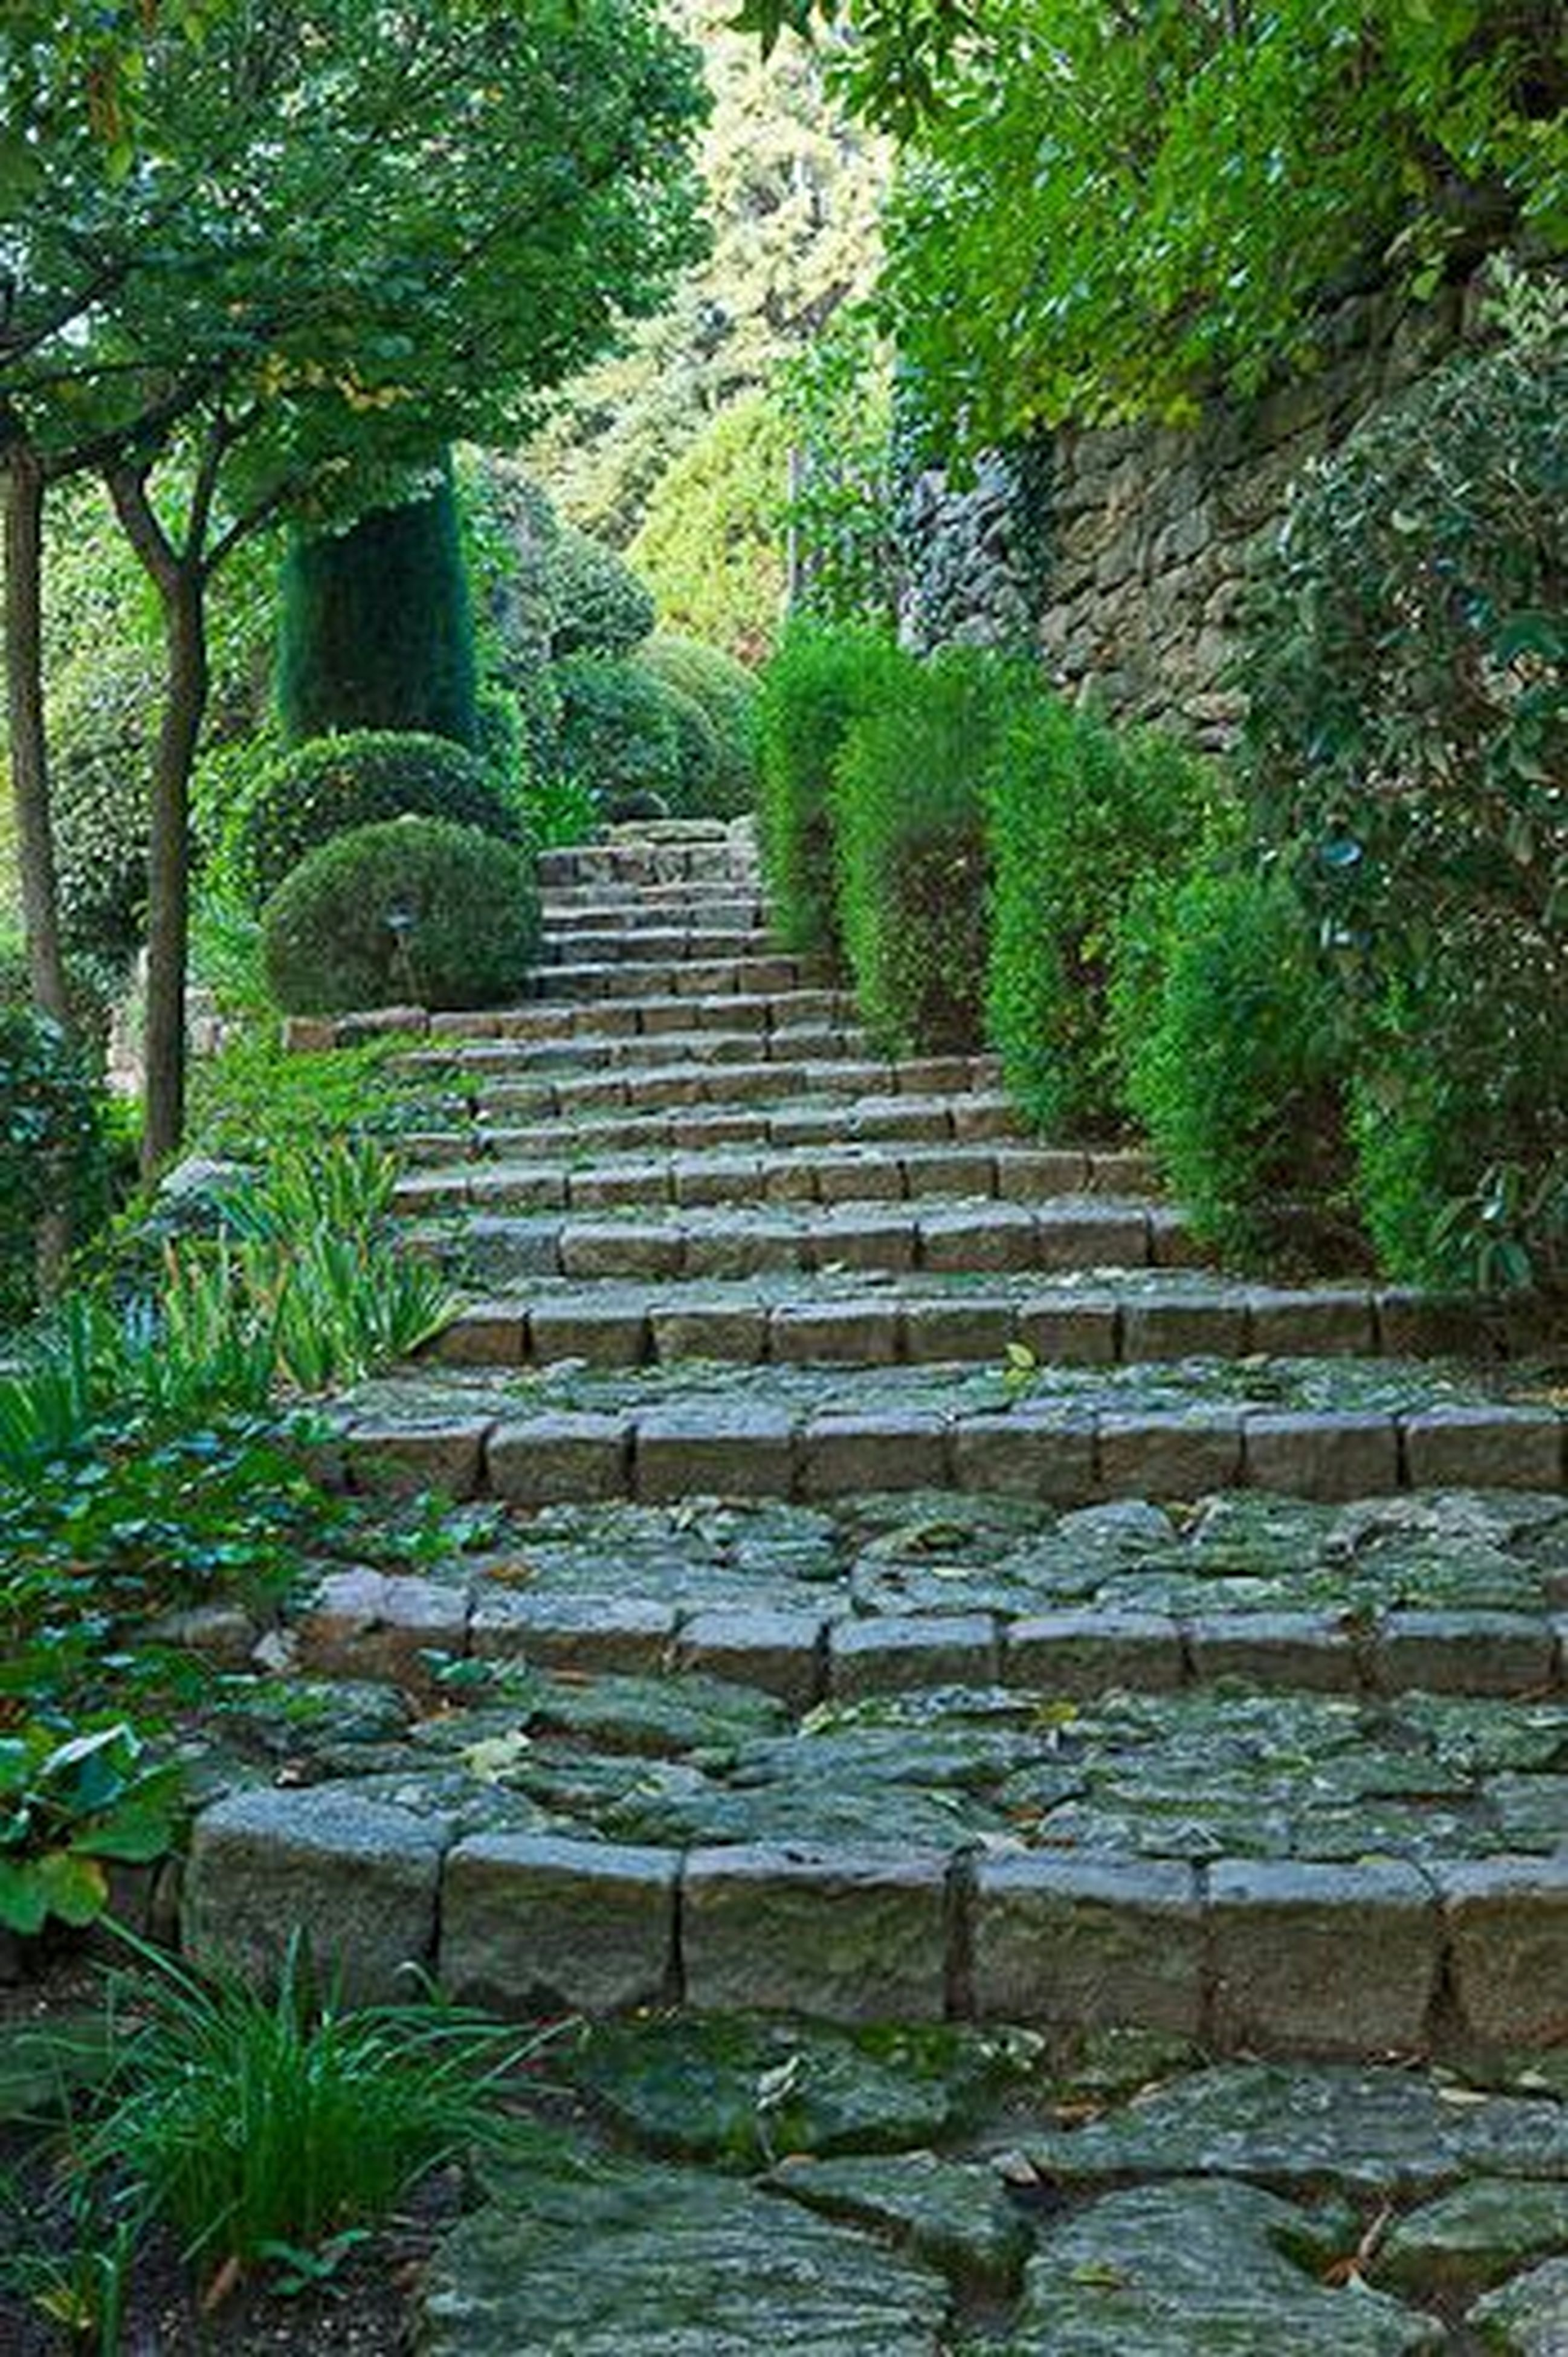 steps, tree, steps and staircases, built structure, staircase, the way forward, architecture, plant, growth, stone wall, green color, railing, stone material, forest, park - man made space, day, nature, outdoors, tranquility, building exterior